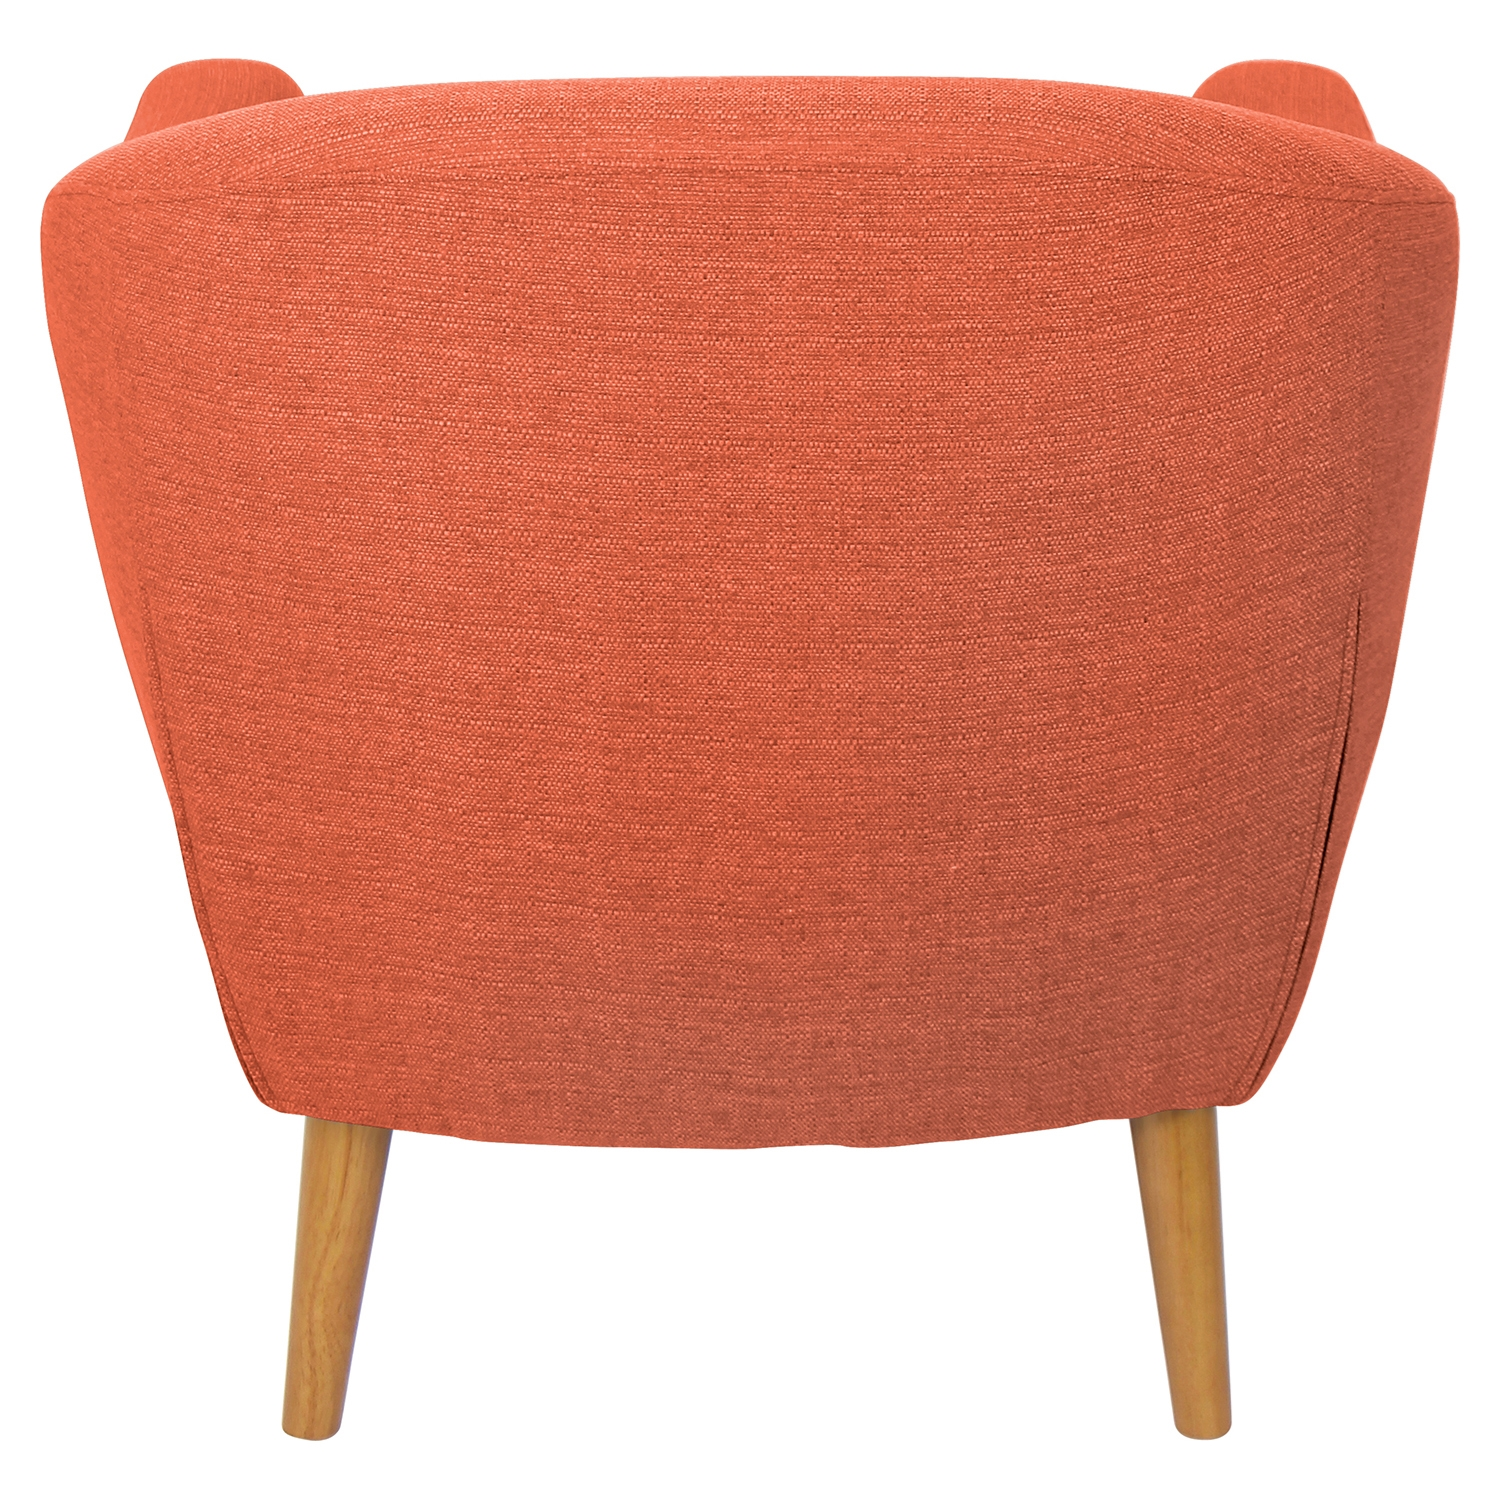 Rockwell Upholstery Armchair - Button Tufted, Orange - LMS-CHR-AH-RKWL-OR